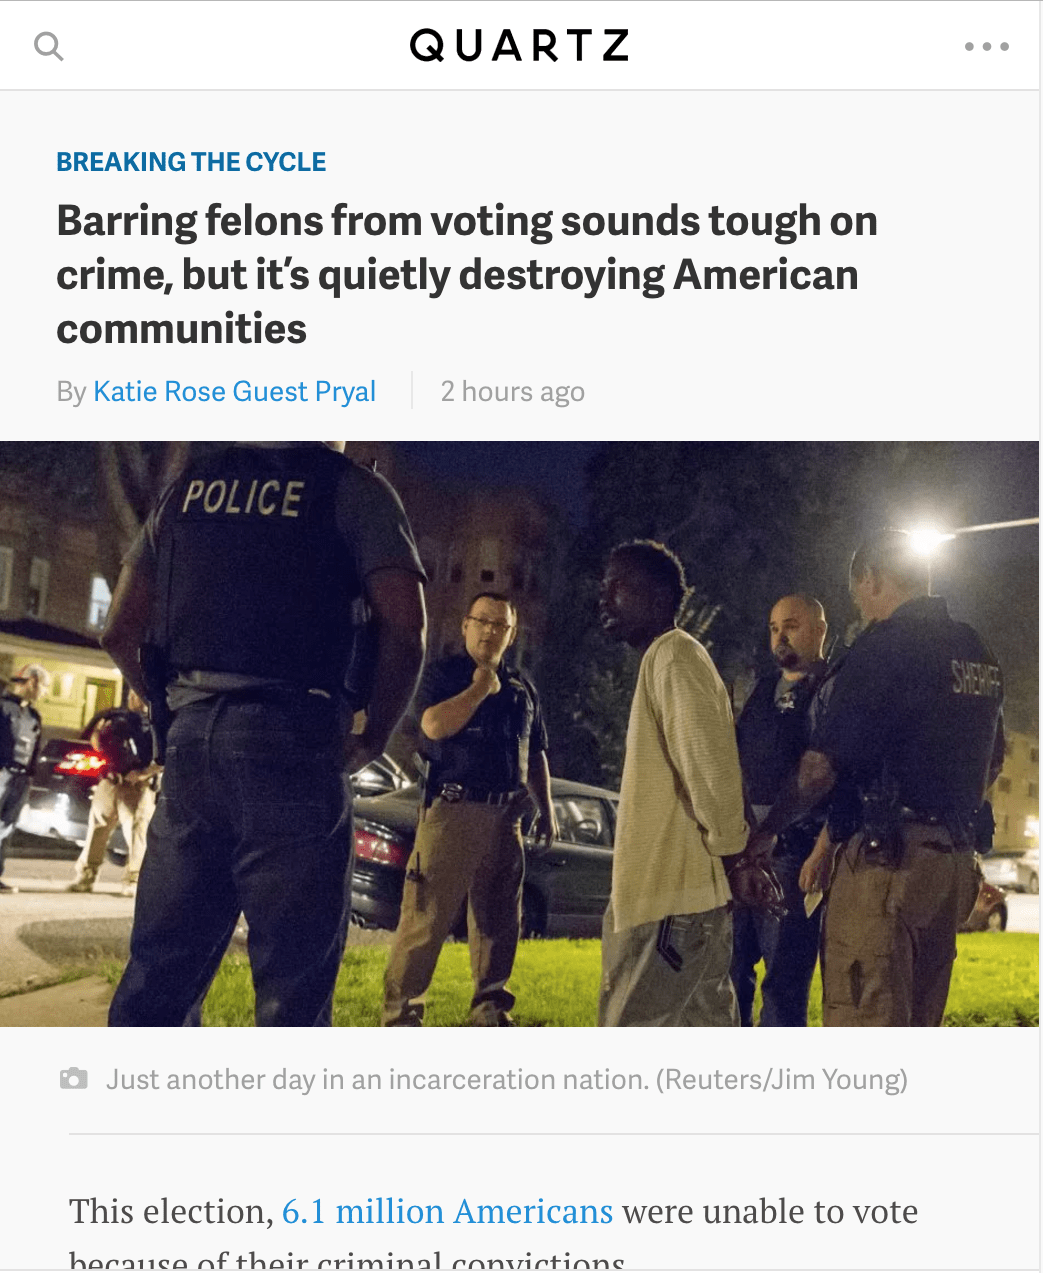 Quartz: Barring felons from voting sounds tough on crime, but it's quietly destroying American communities